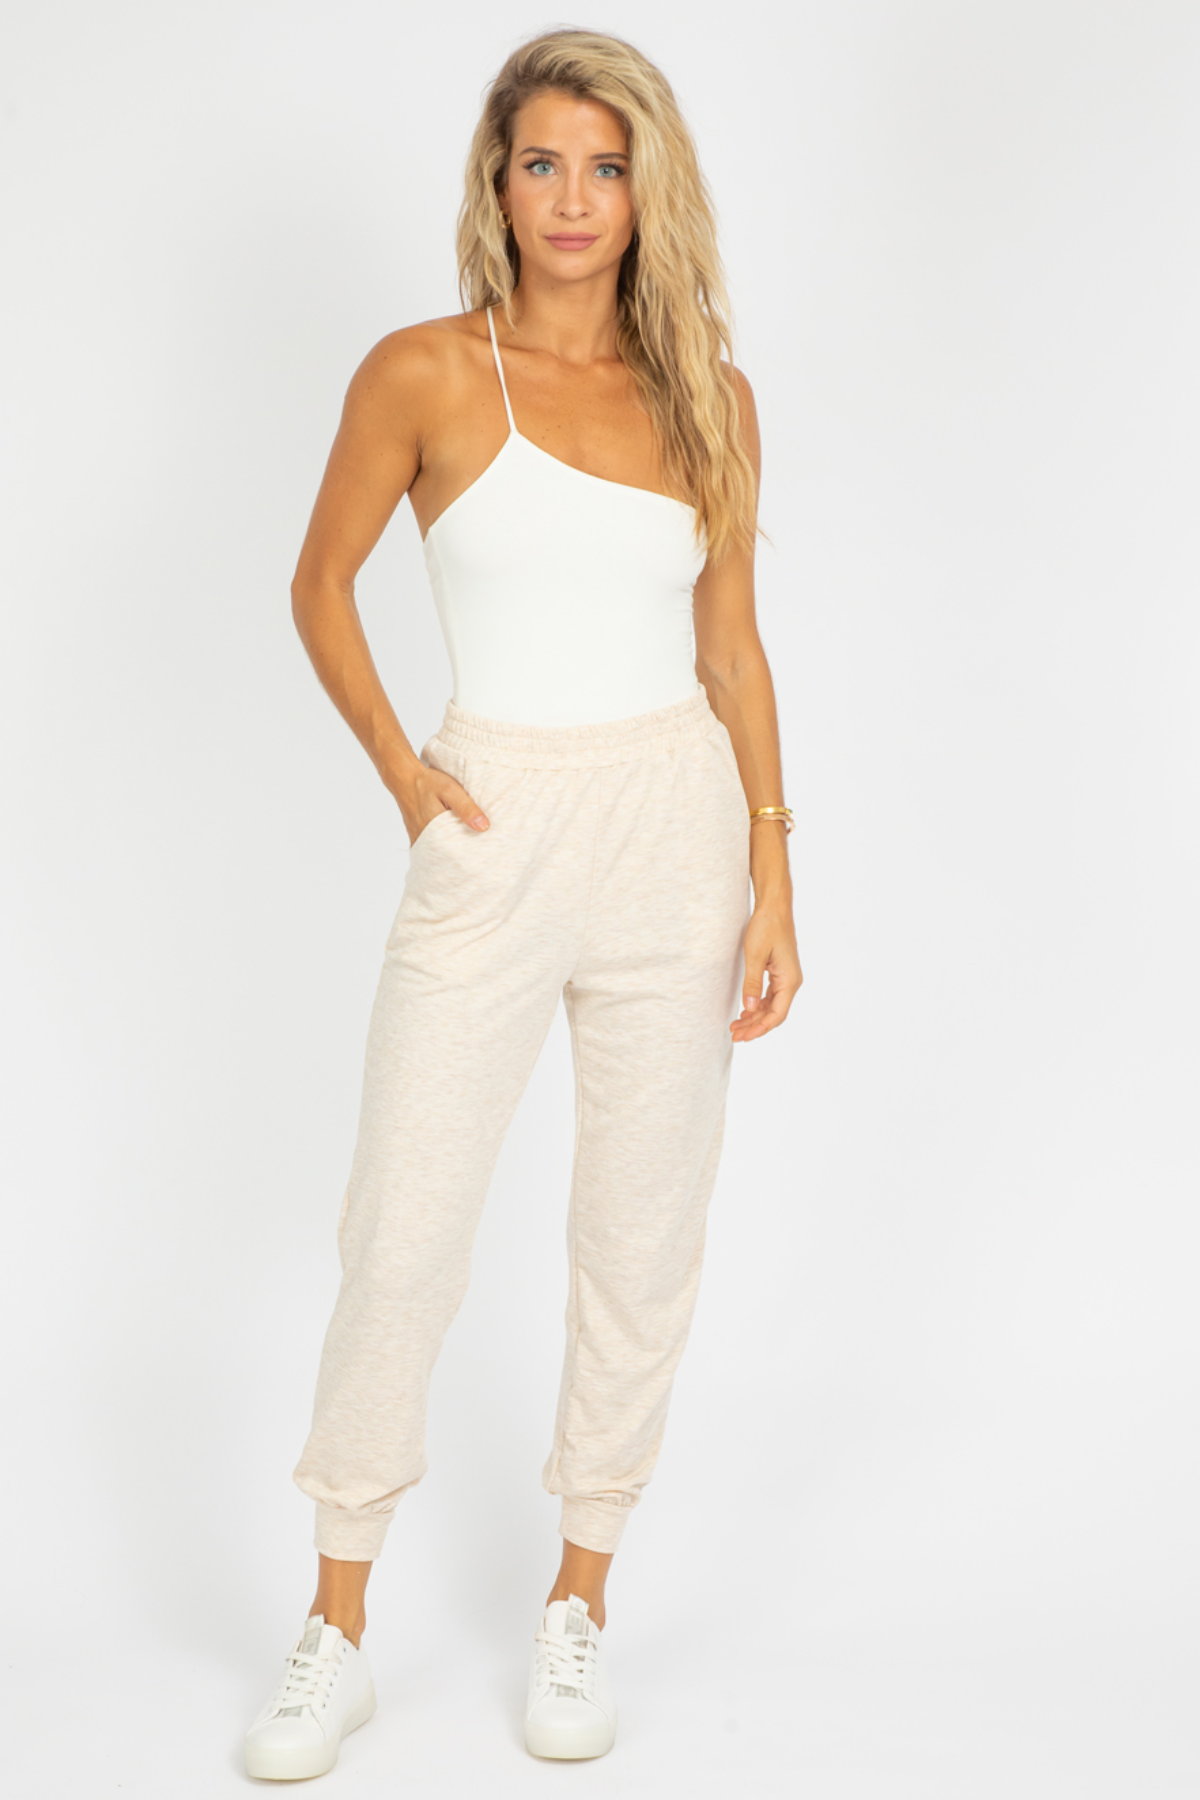 OATMEAL KNIT LOUNGE JOGGERS